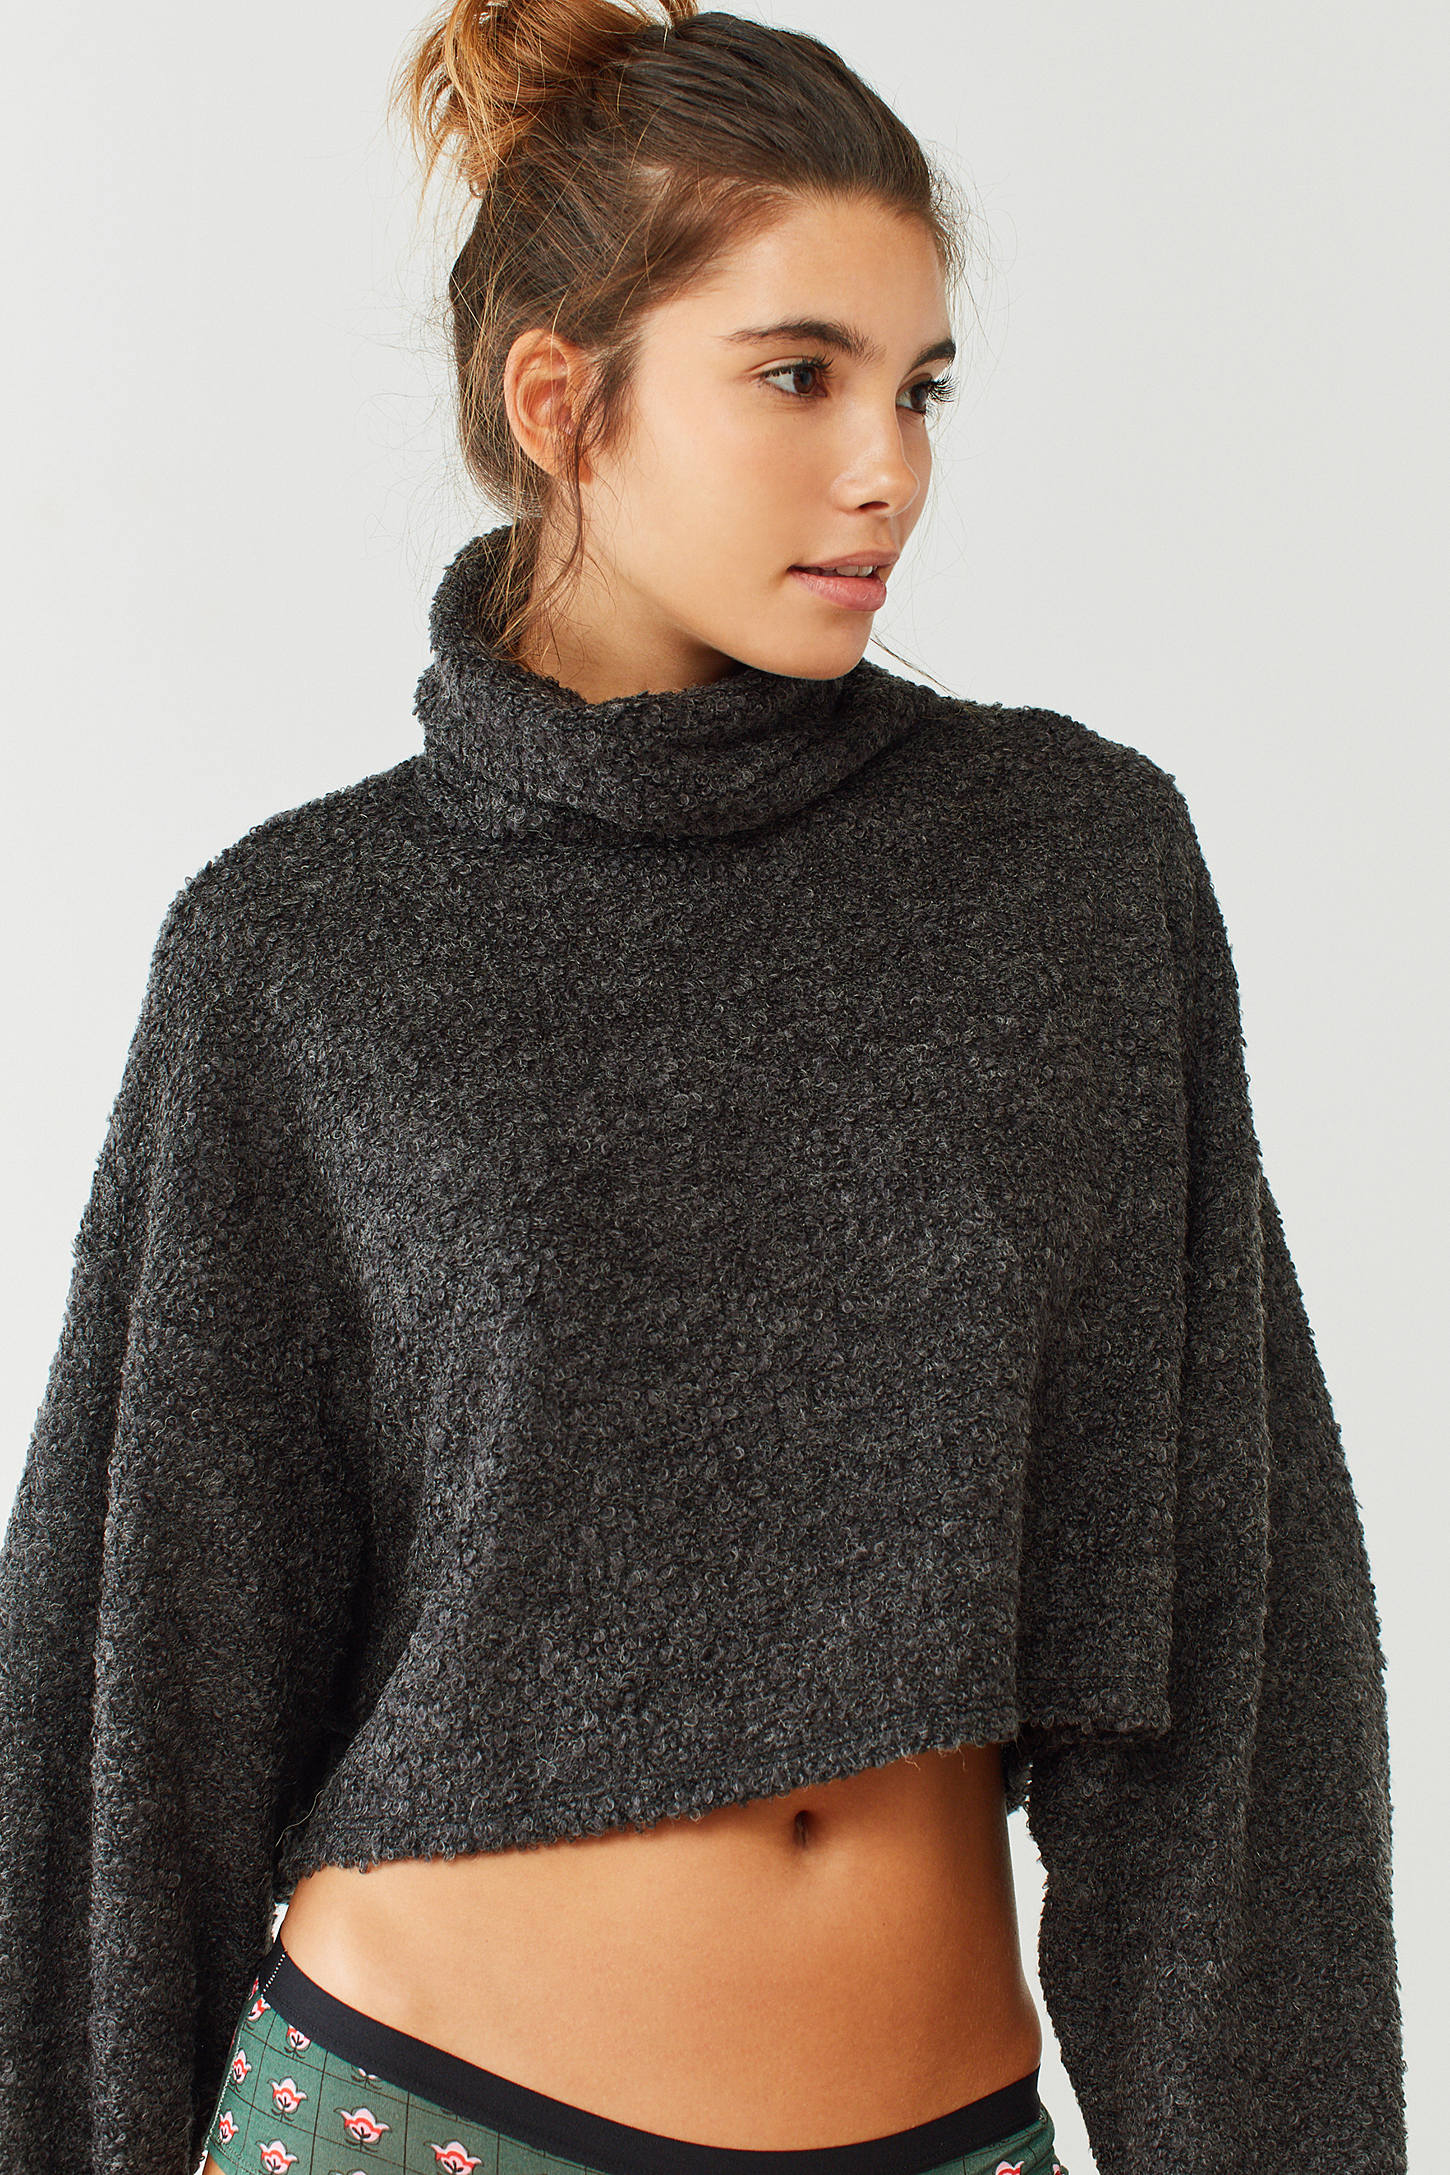 Out From Under Tear Away Turtleneck Sweater | Urban Outfitters